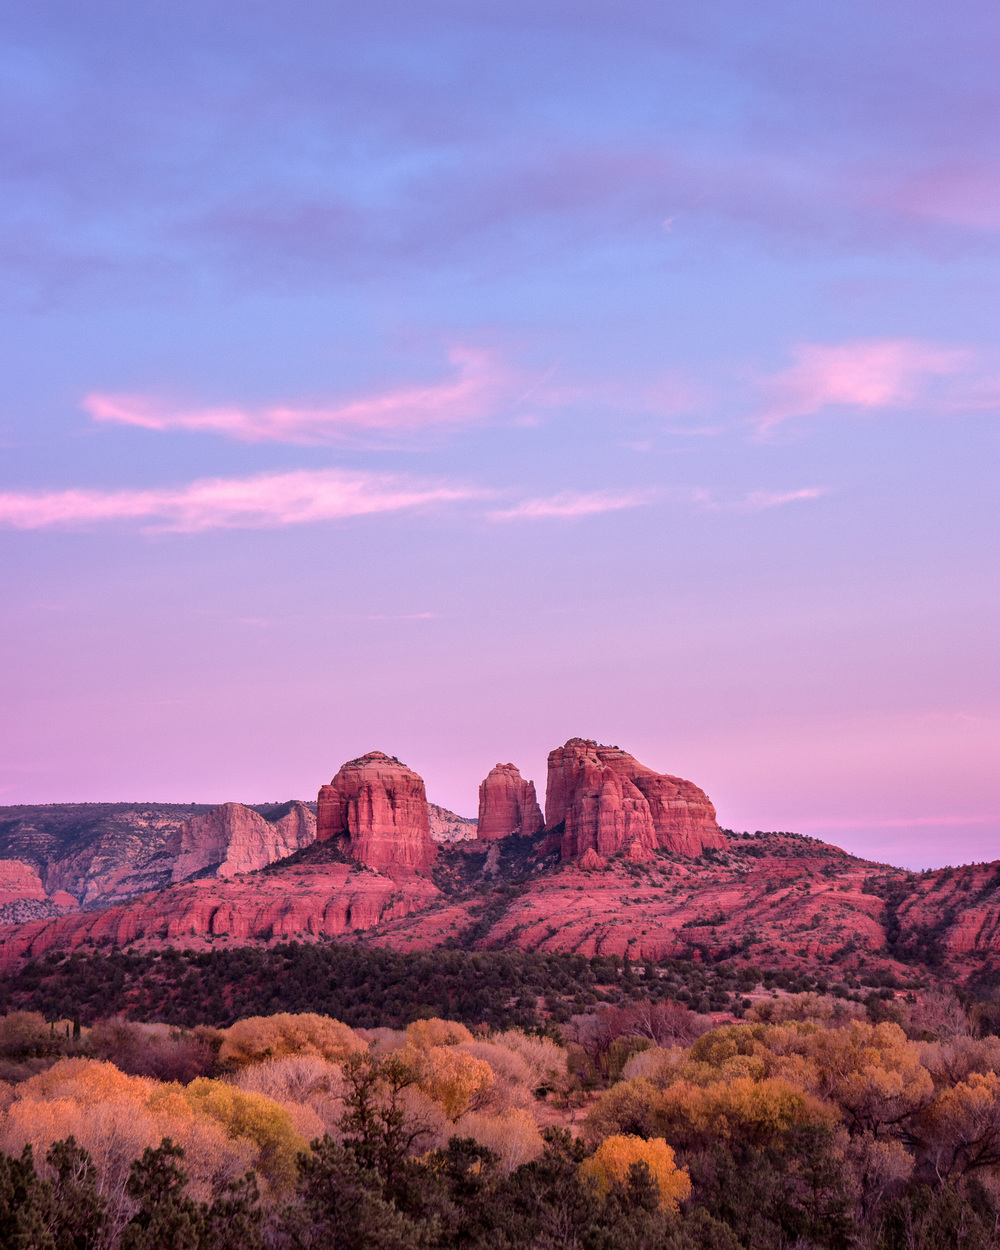 Wasim-Muklashy-Photography_Sedona_Arizona_A-Sedona-Sun-Sets.jpg